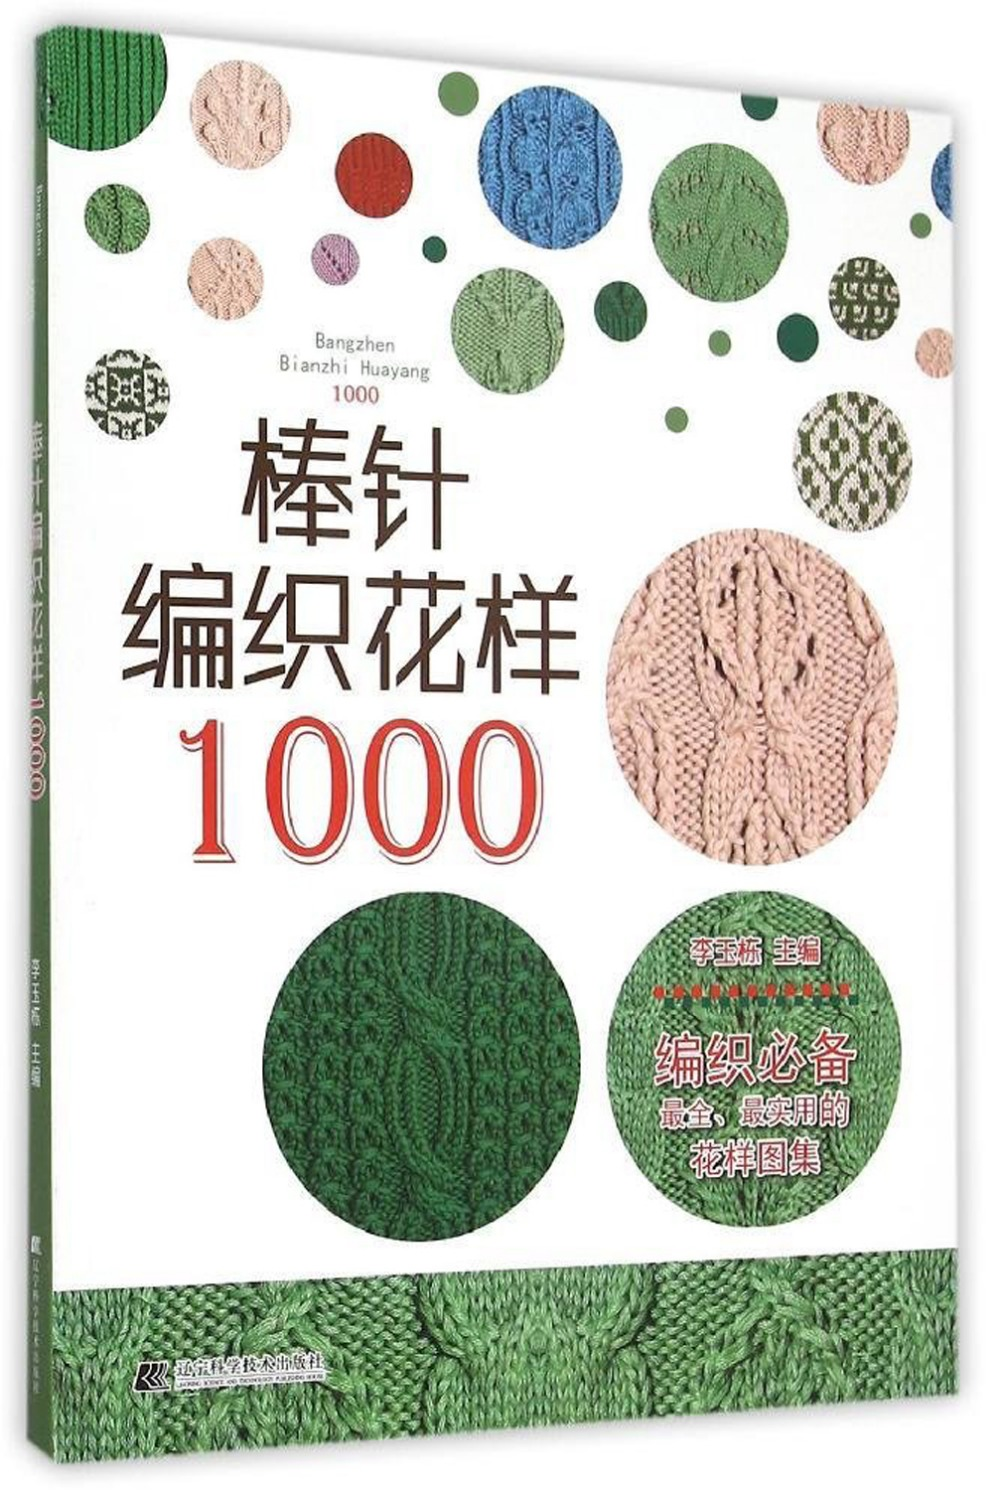 Chinese Knitting Pattern Book with 1000 Different PatternChinese Knitting Pattern Book with 1000 Different Pattern